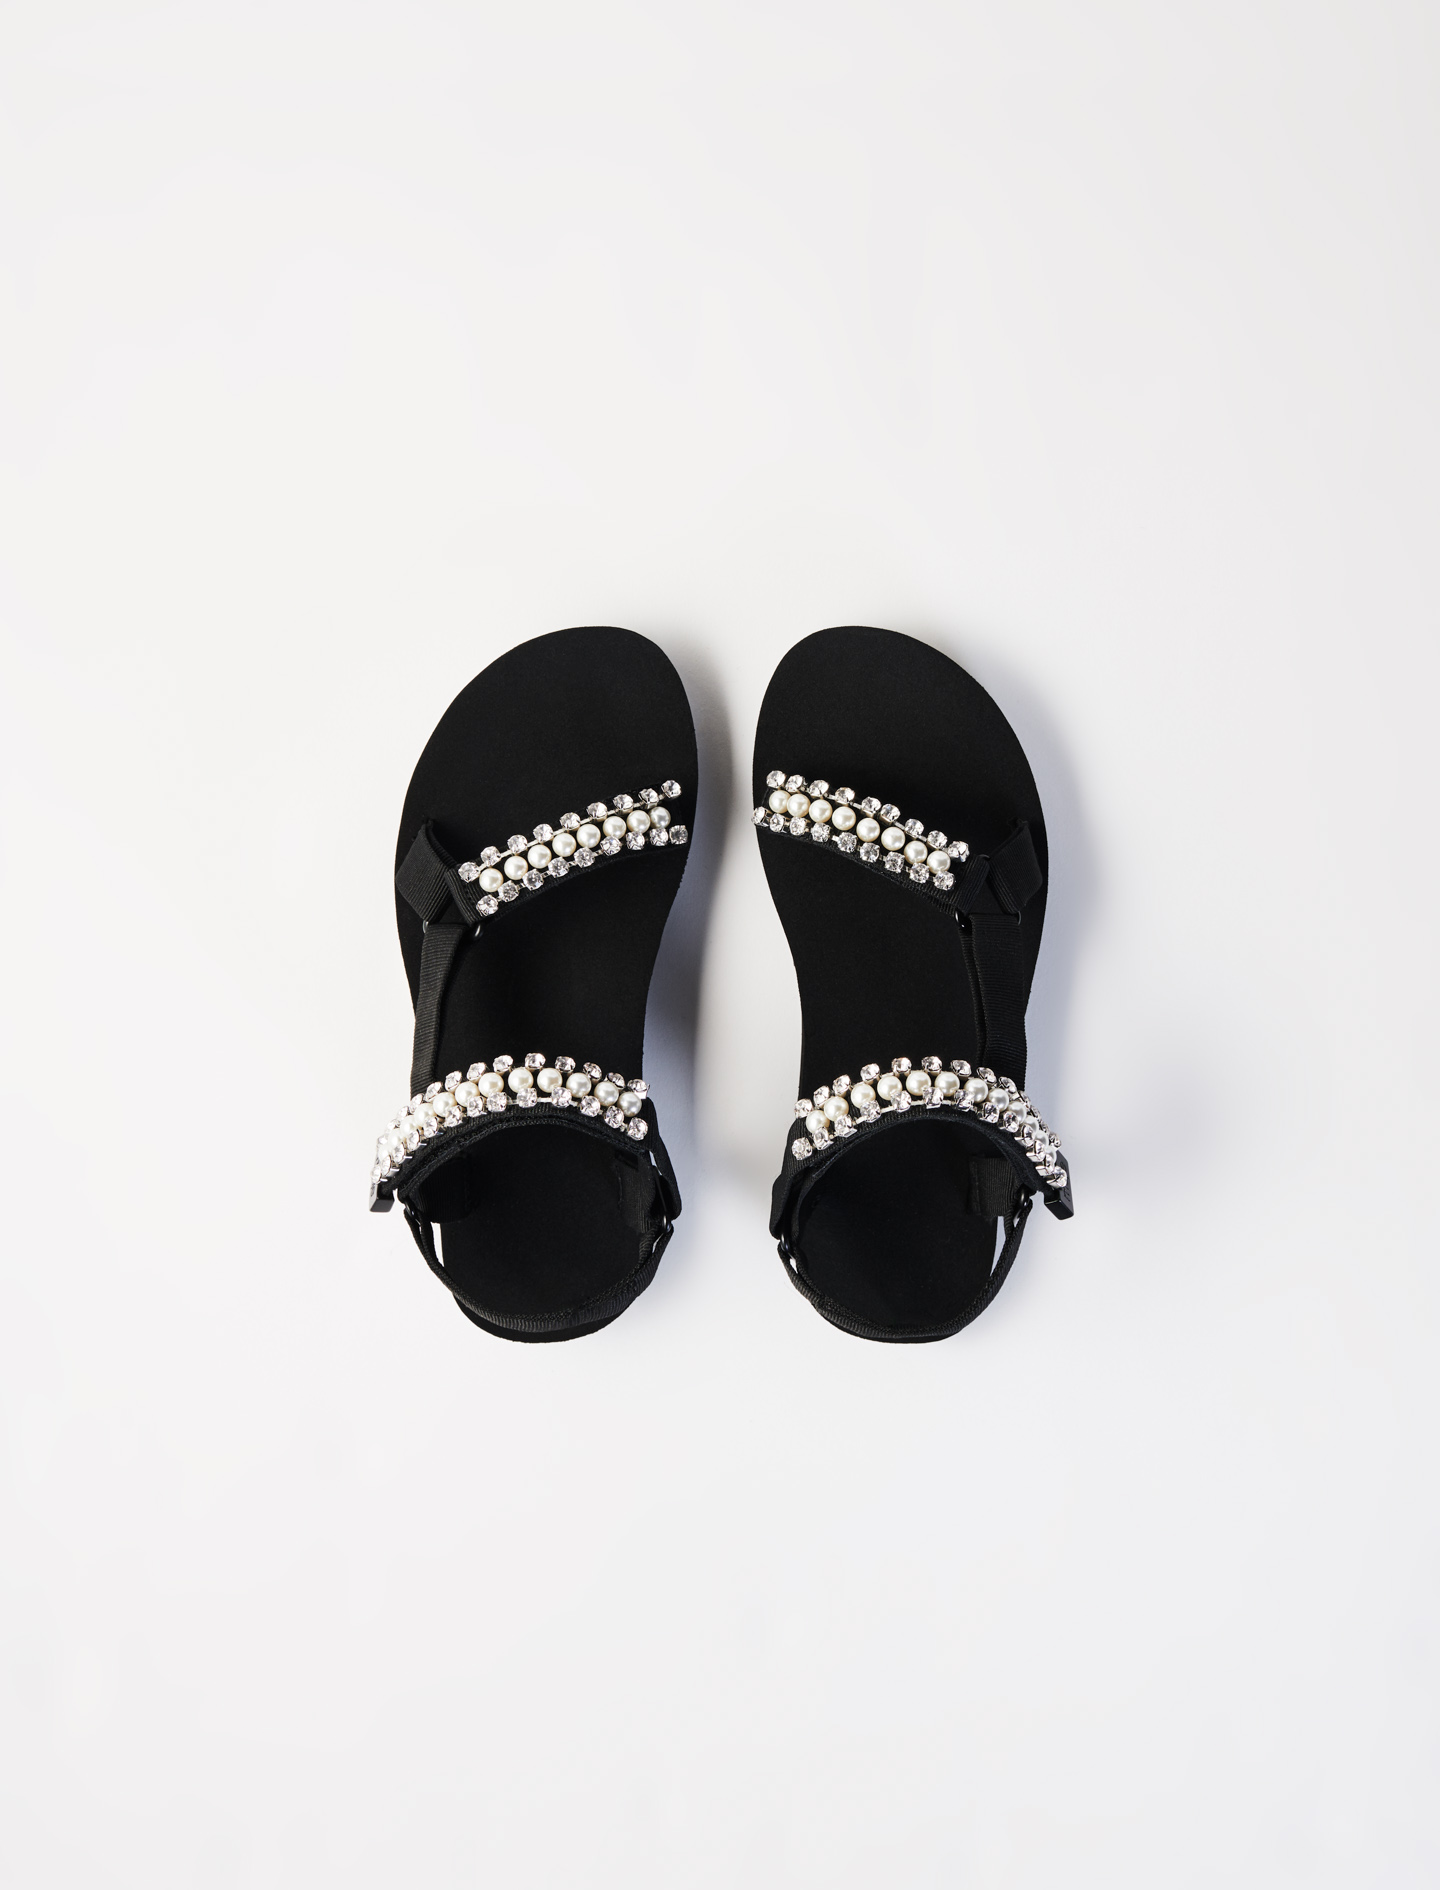 Hiking sandals with diamanté and beads - Black